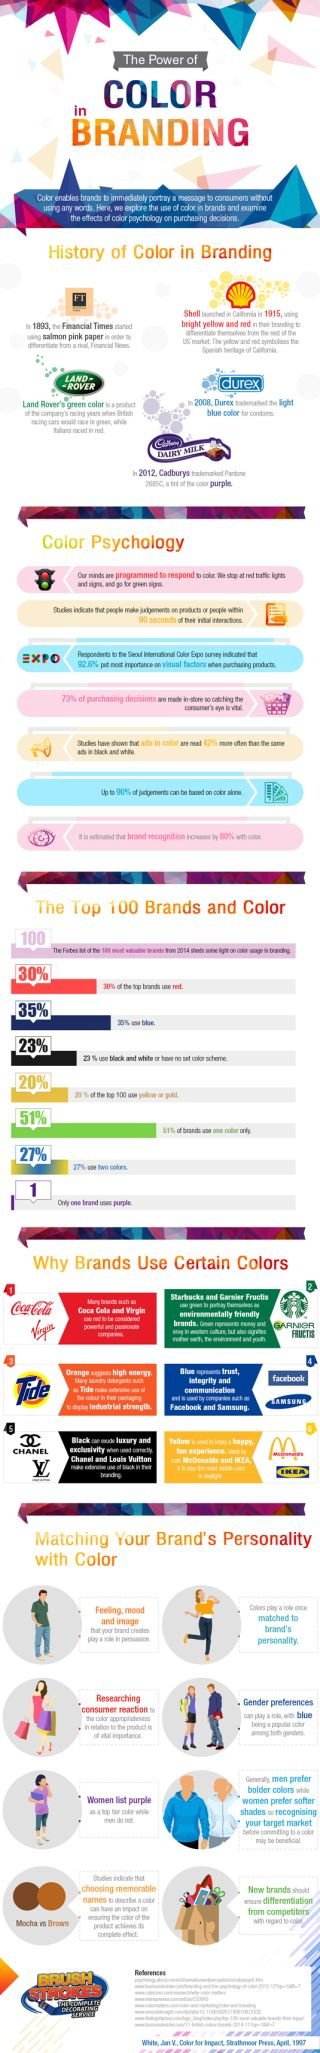 The power of colour in branding